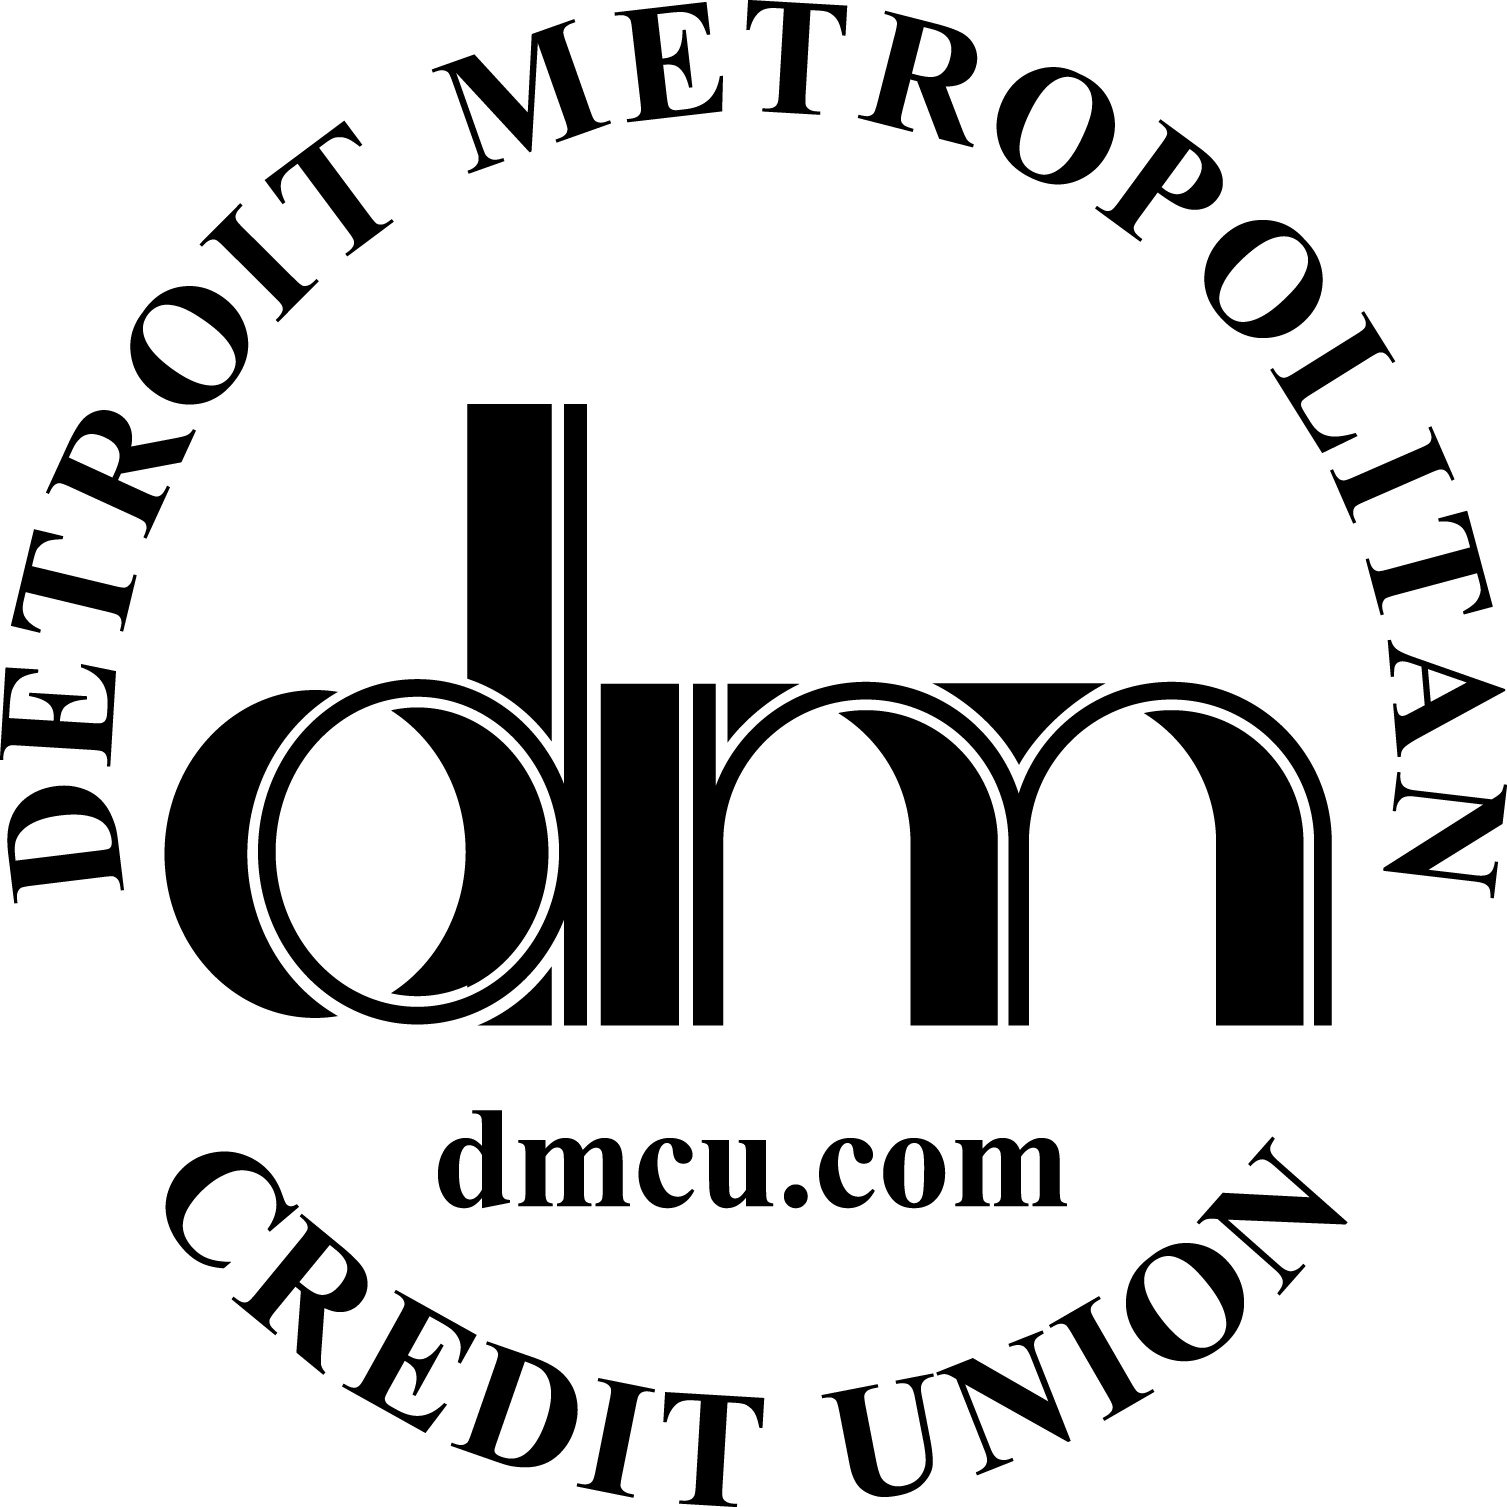 Detroit Metropolitan Credit Union